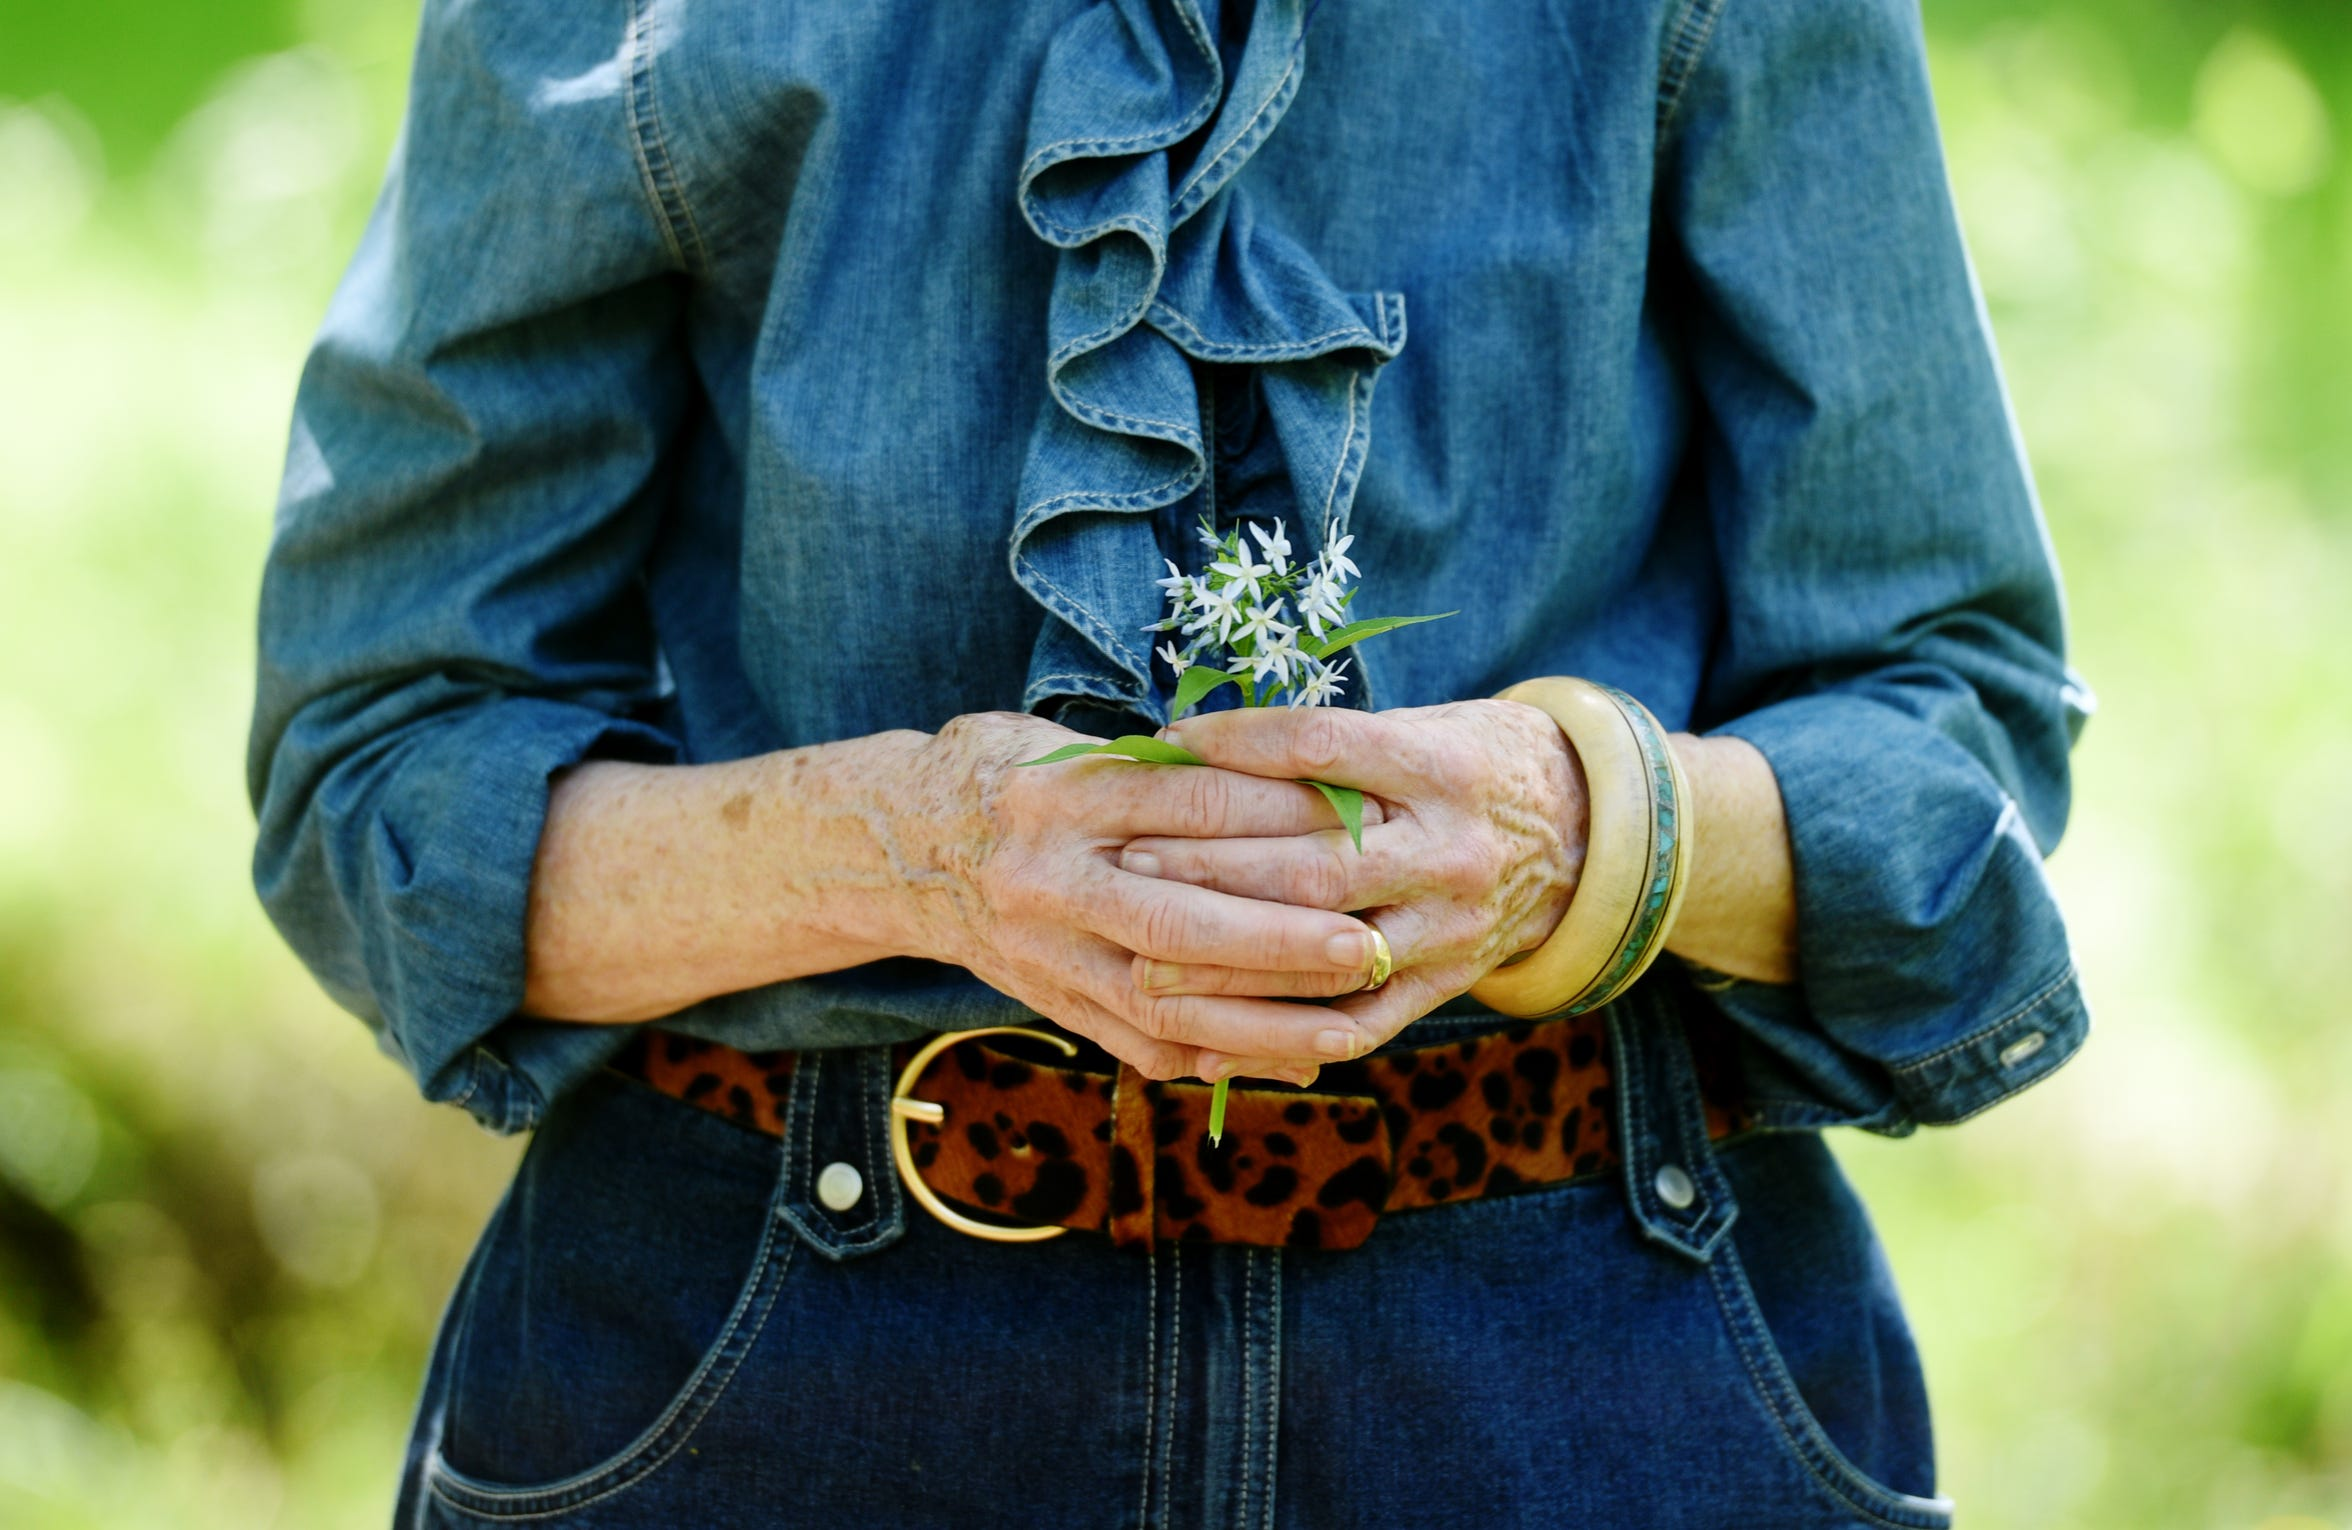 Maggie holds bouquet of native Blue Star Flower which is planted in the Pine Tree Garden.